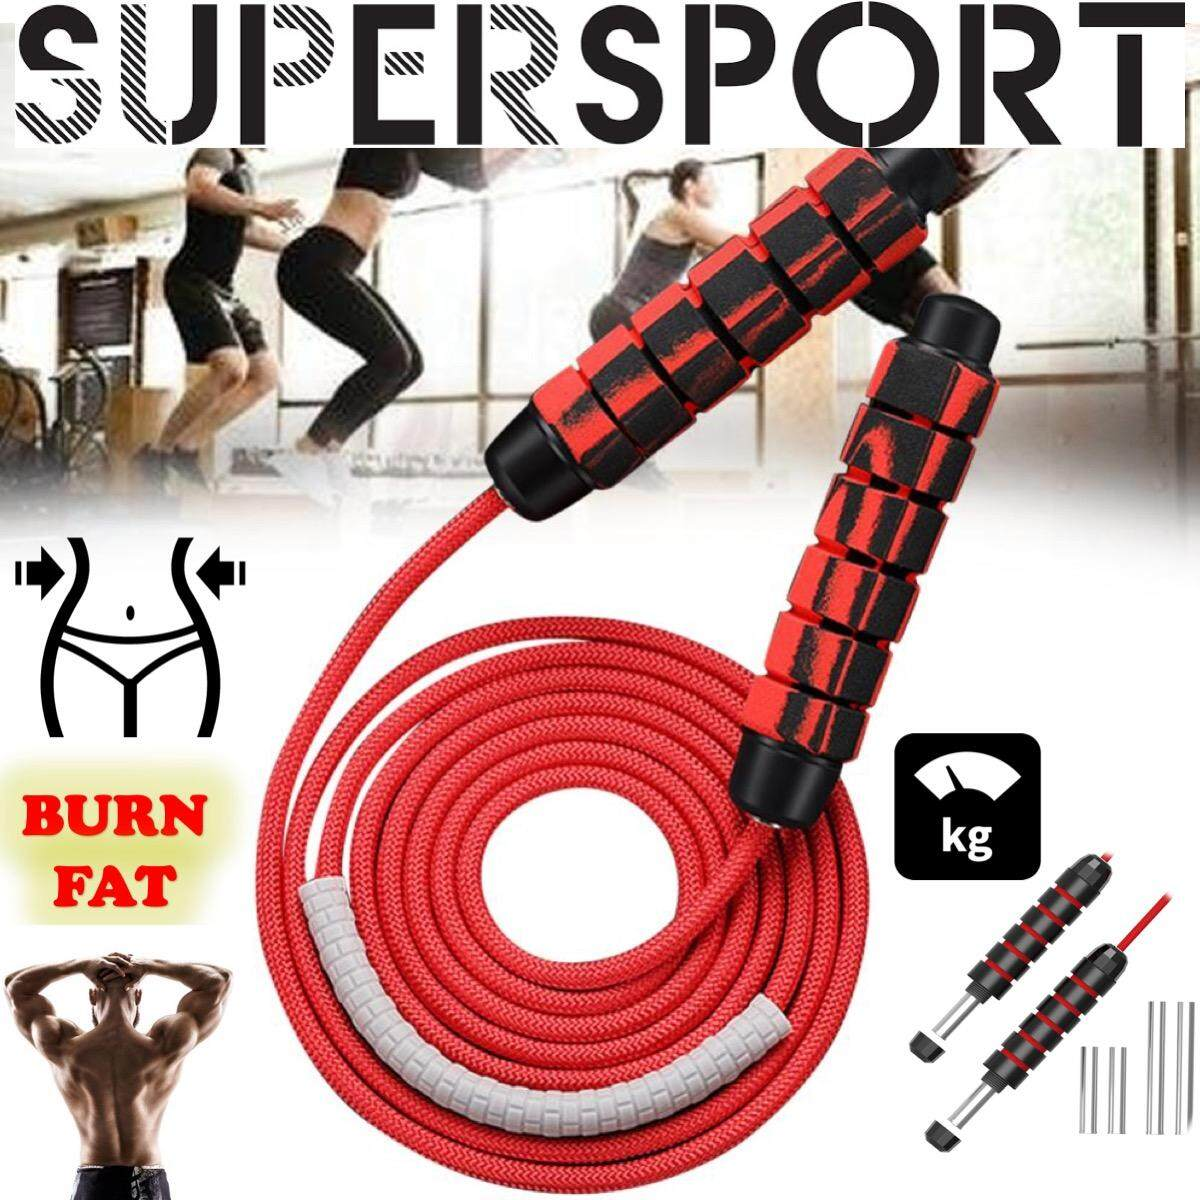 Boxing Skipping Rope WIRE with Heavy Weighted Steel Handles Gym Fitness